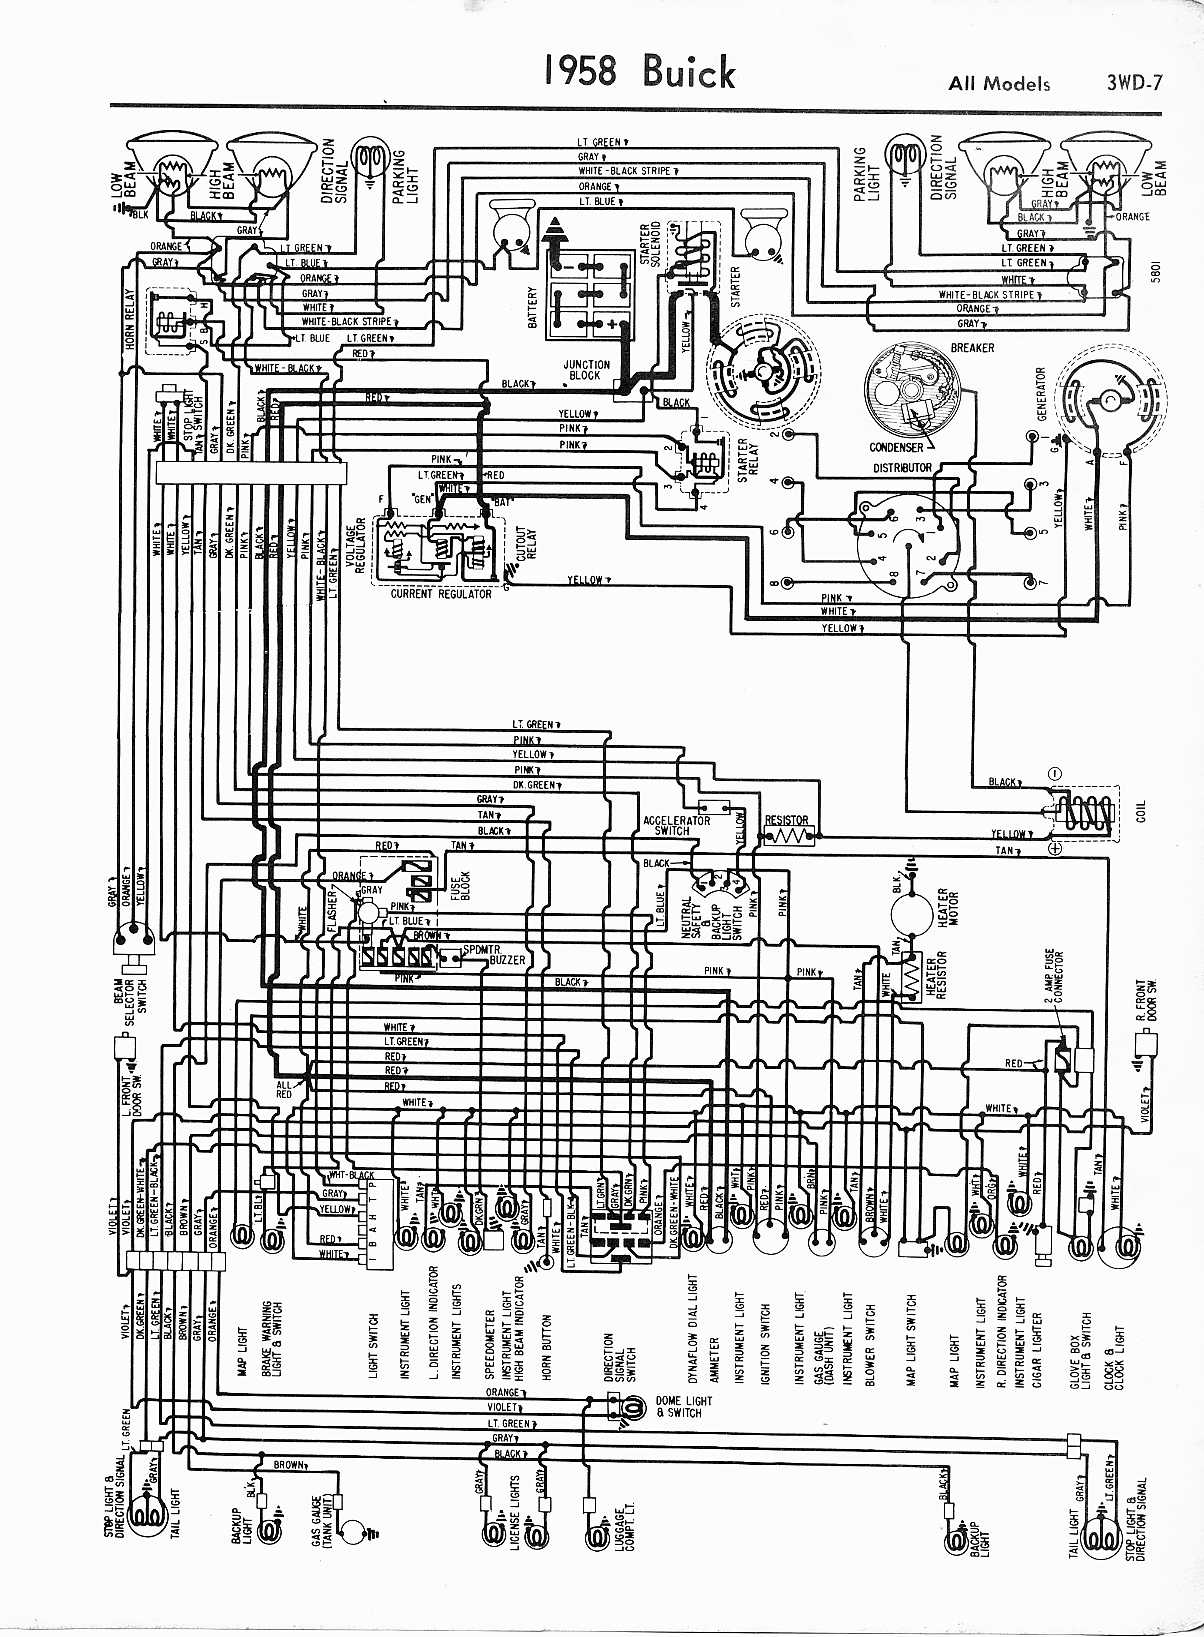 Wiring Diagrams Of 1960 Buick All Models Wire Data Schema 1957 1965 Rh Oldcarmanualproject Com 1952 Diagram Chevy